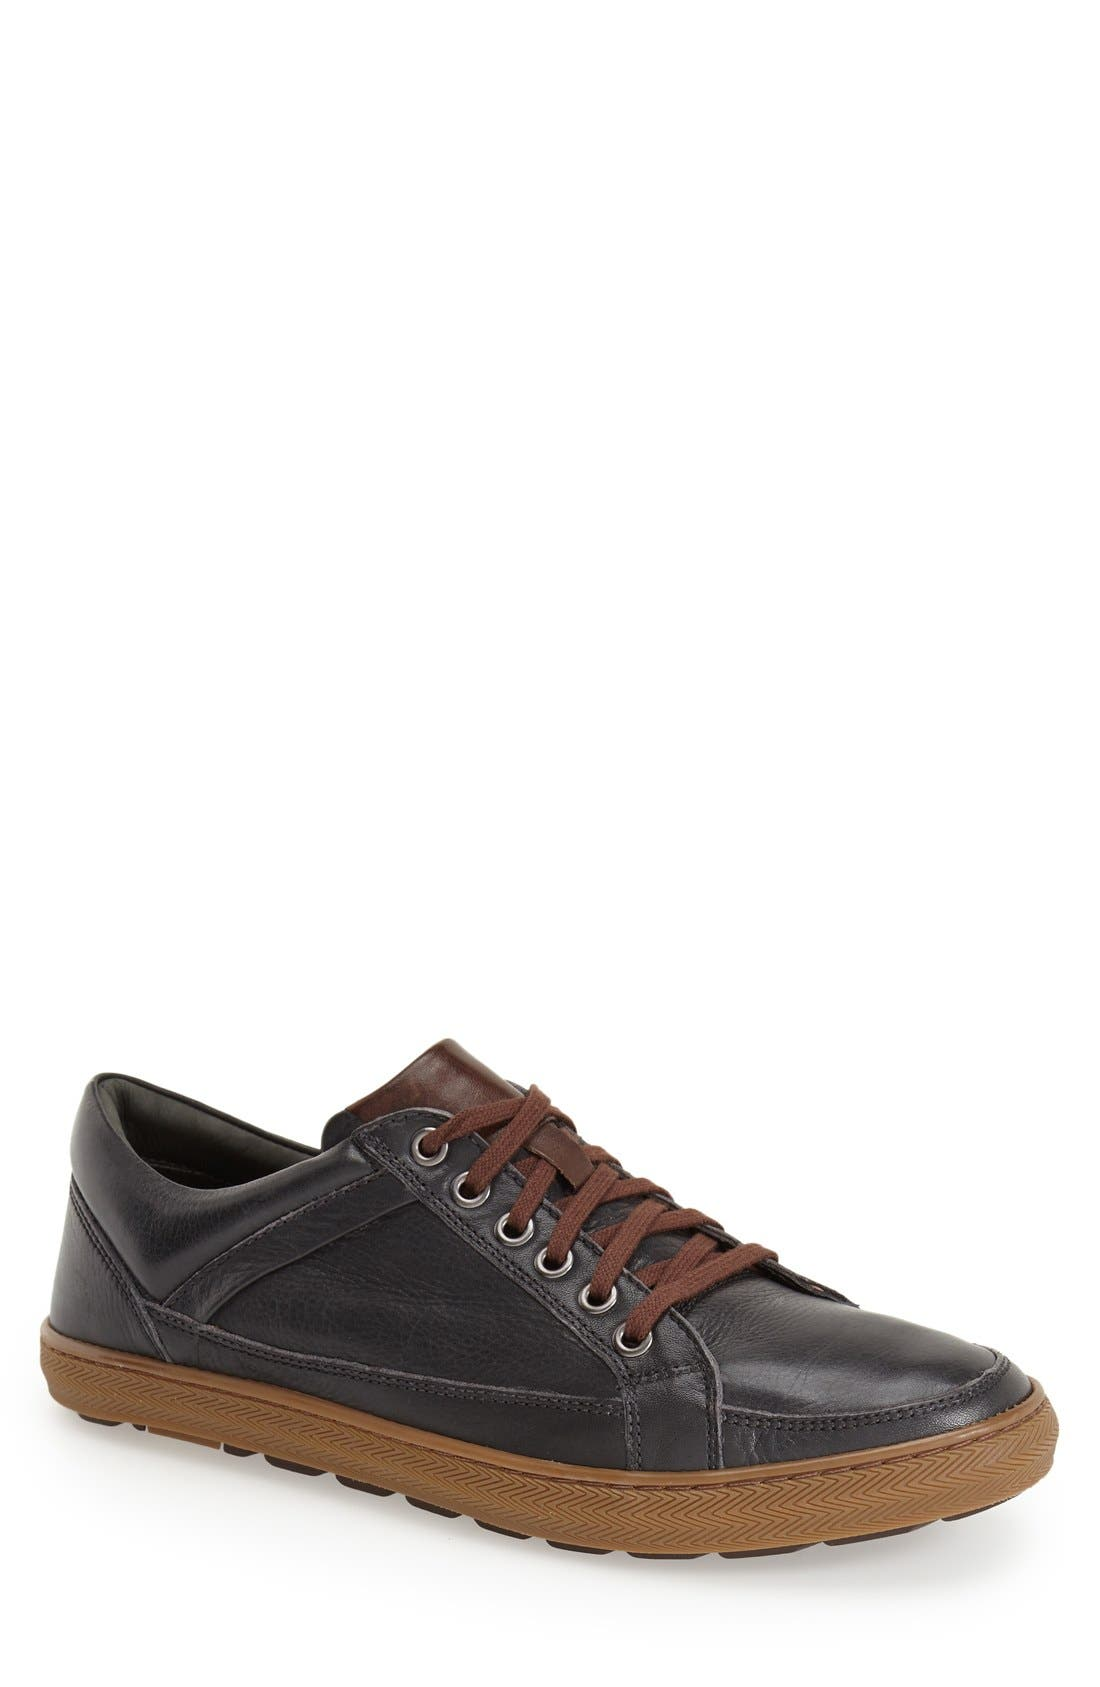 Anatomic & Co Serra Sneaker (Men)